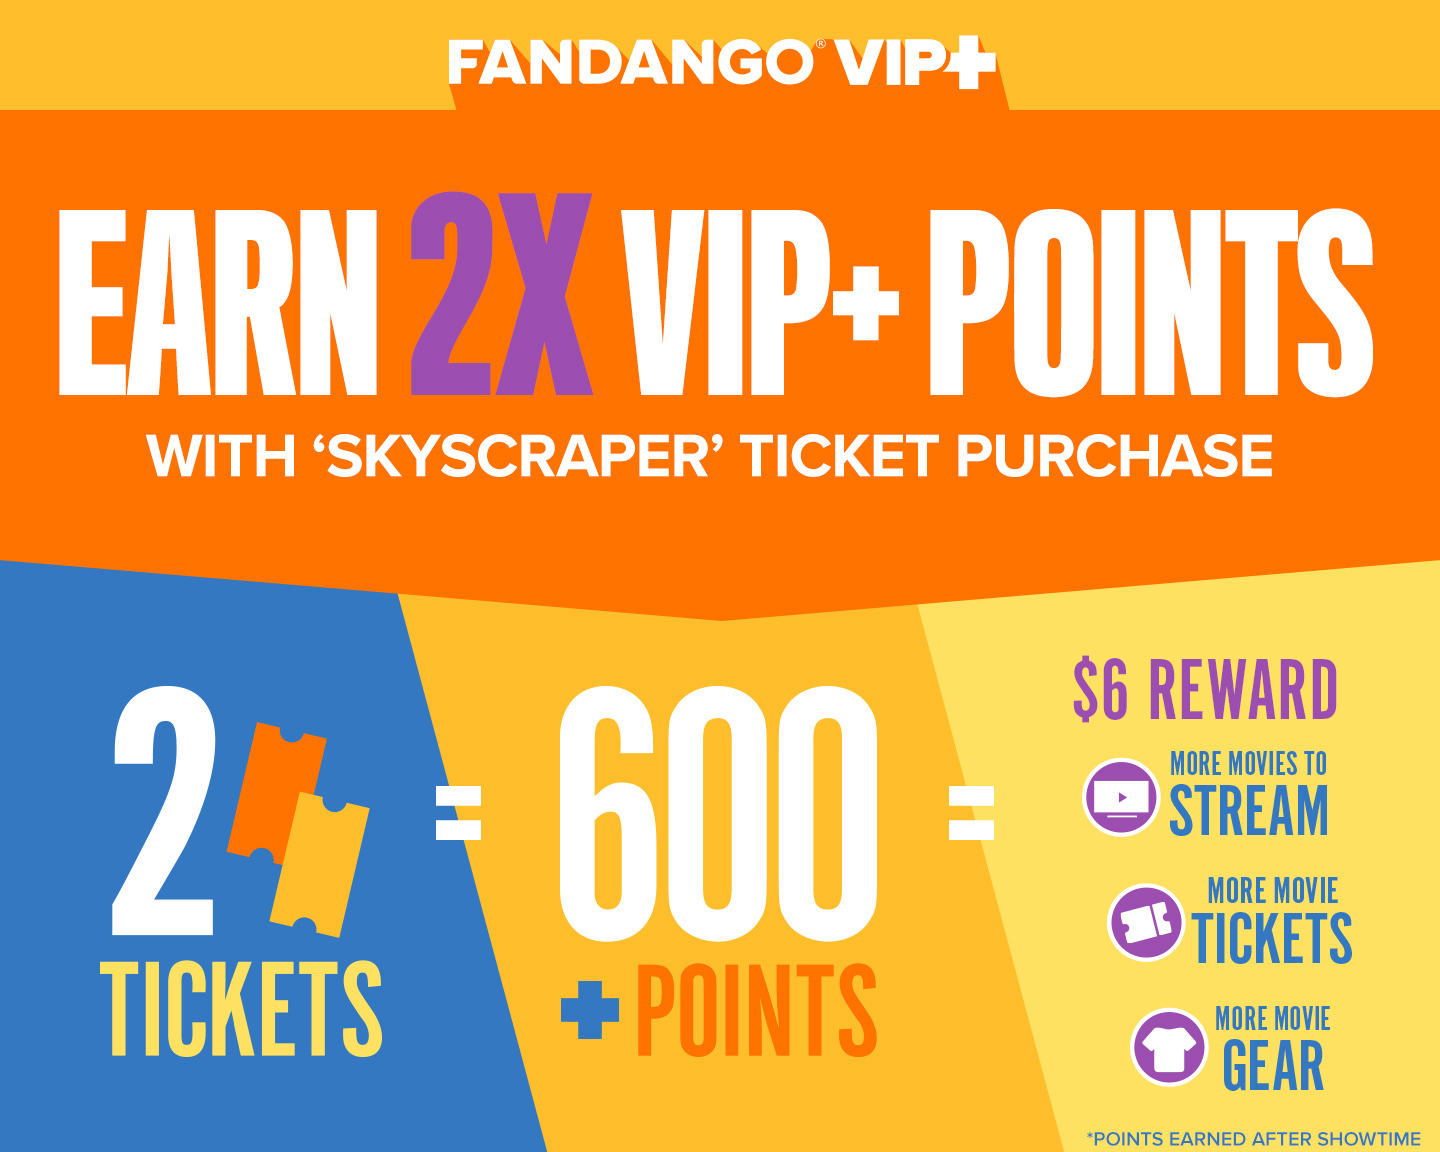 EARN 2X VIP+ POINTS